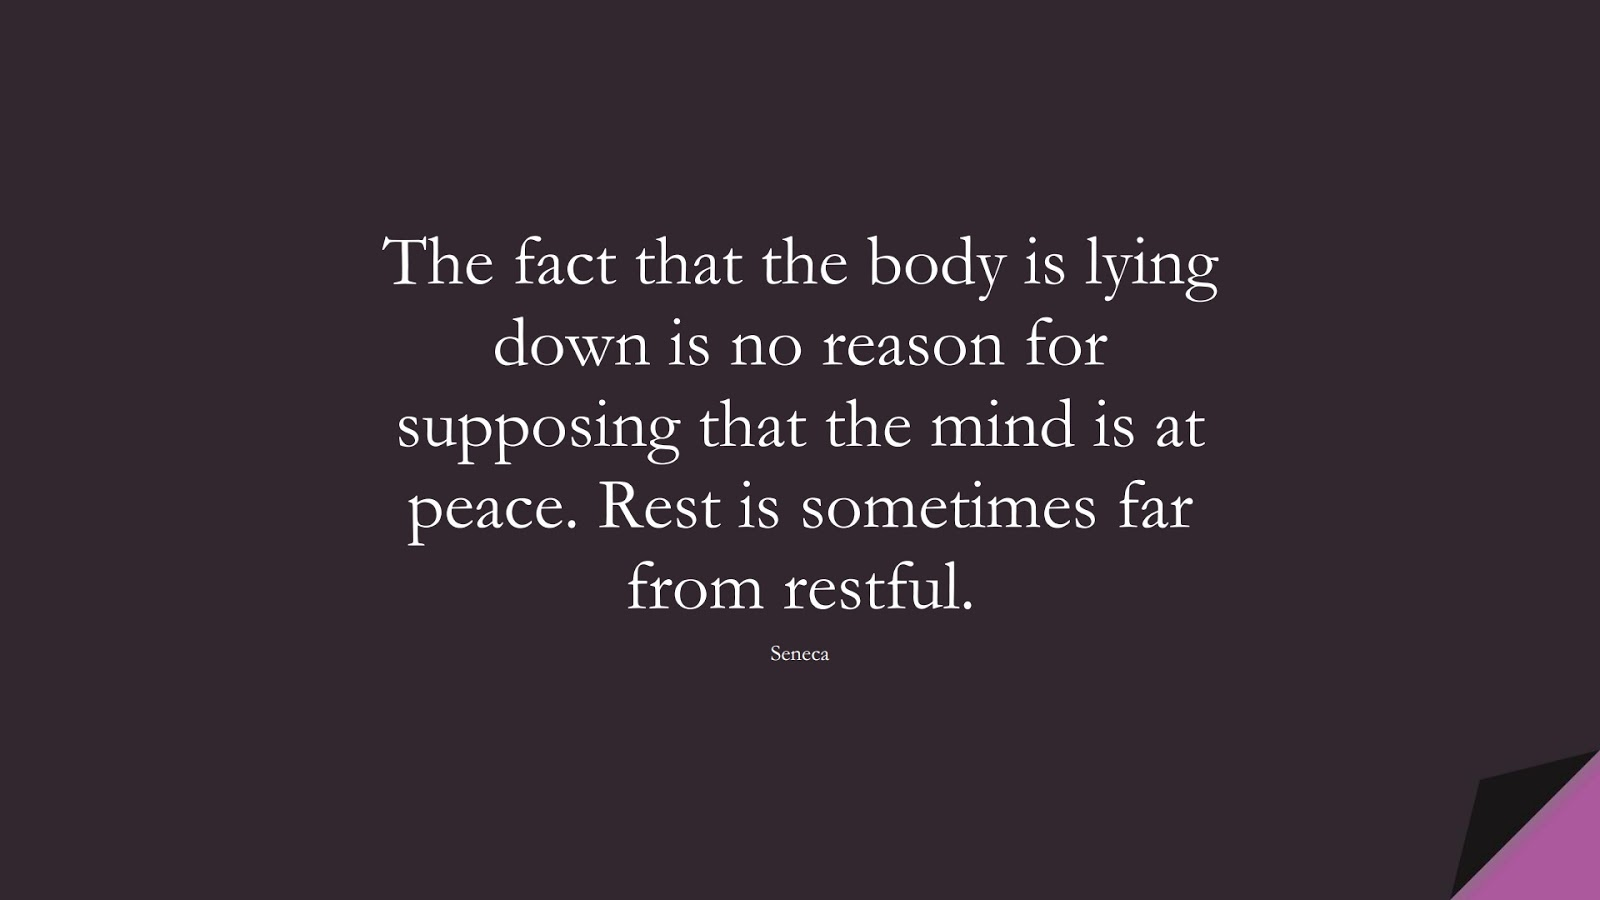 The fact that the body is lying down is no reason for supposing that the mind is at peace. Rest is sometimes far from restful. (Seneca);  #AnxietyQuotes